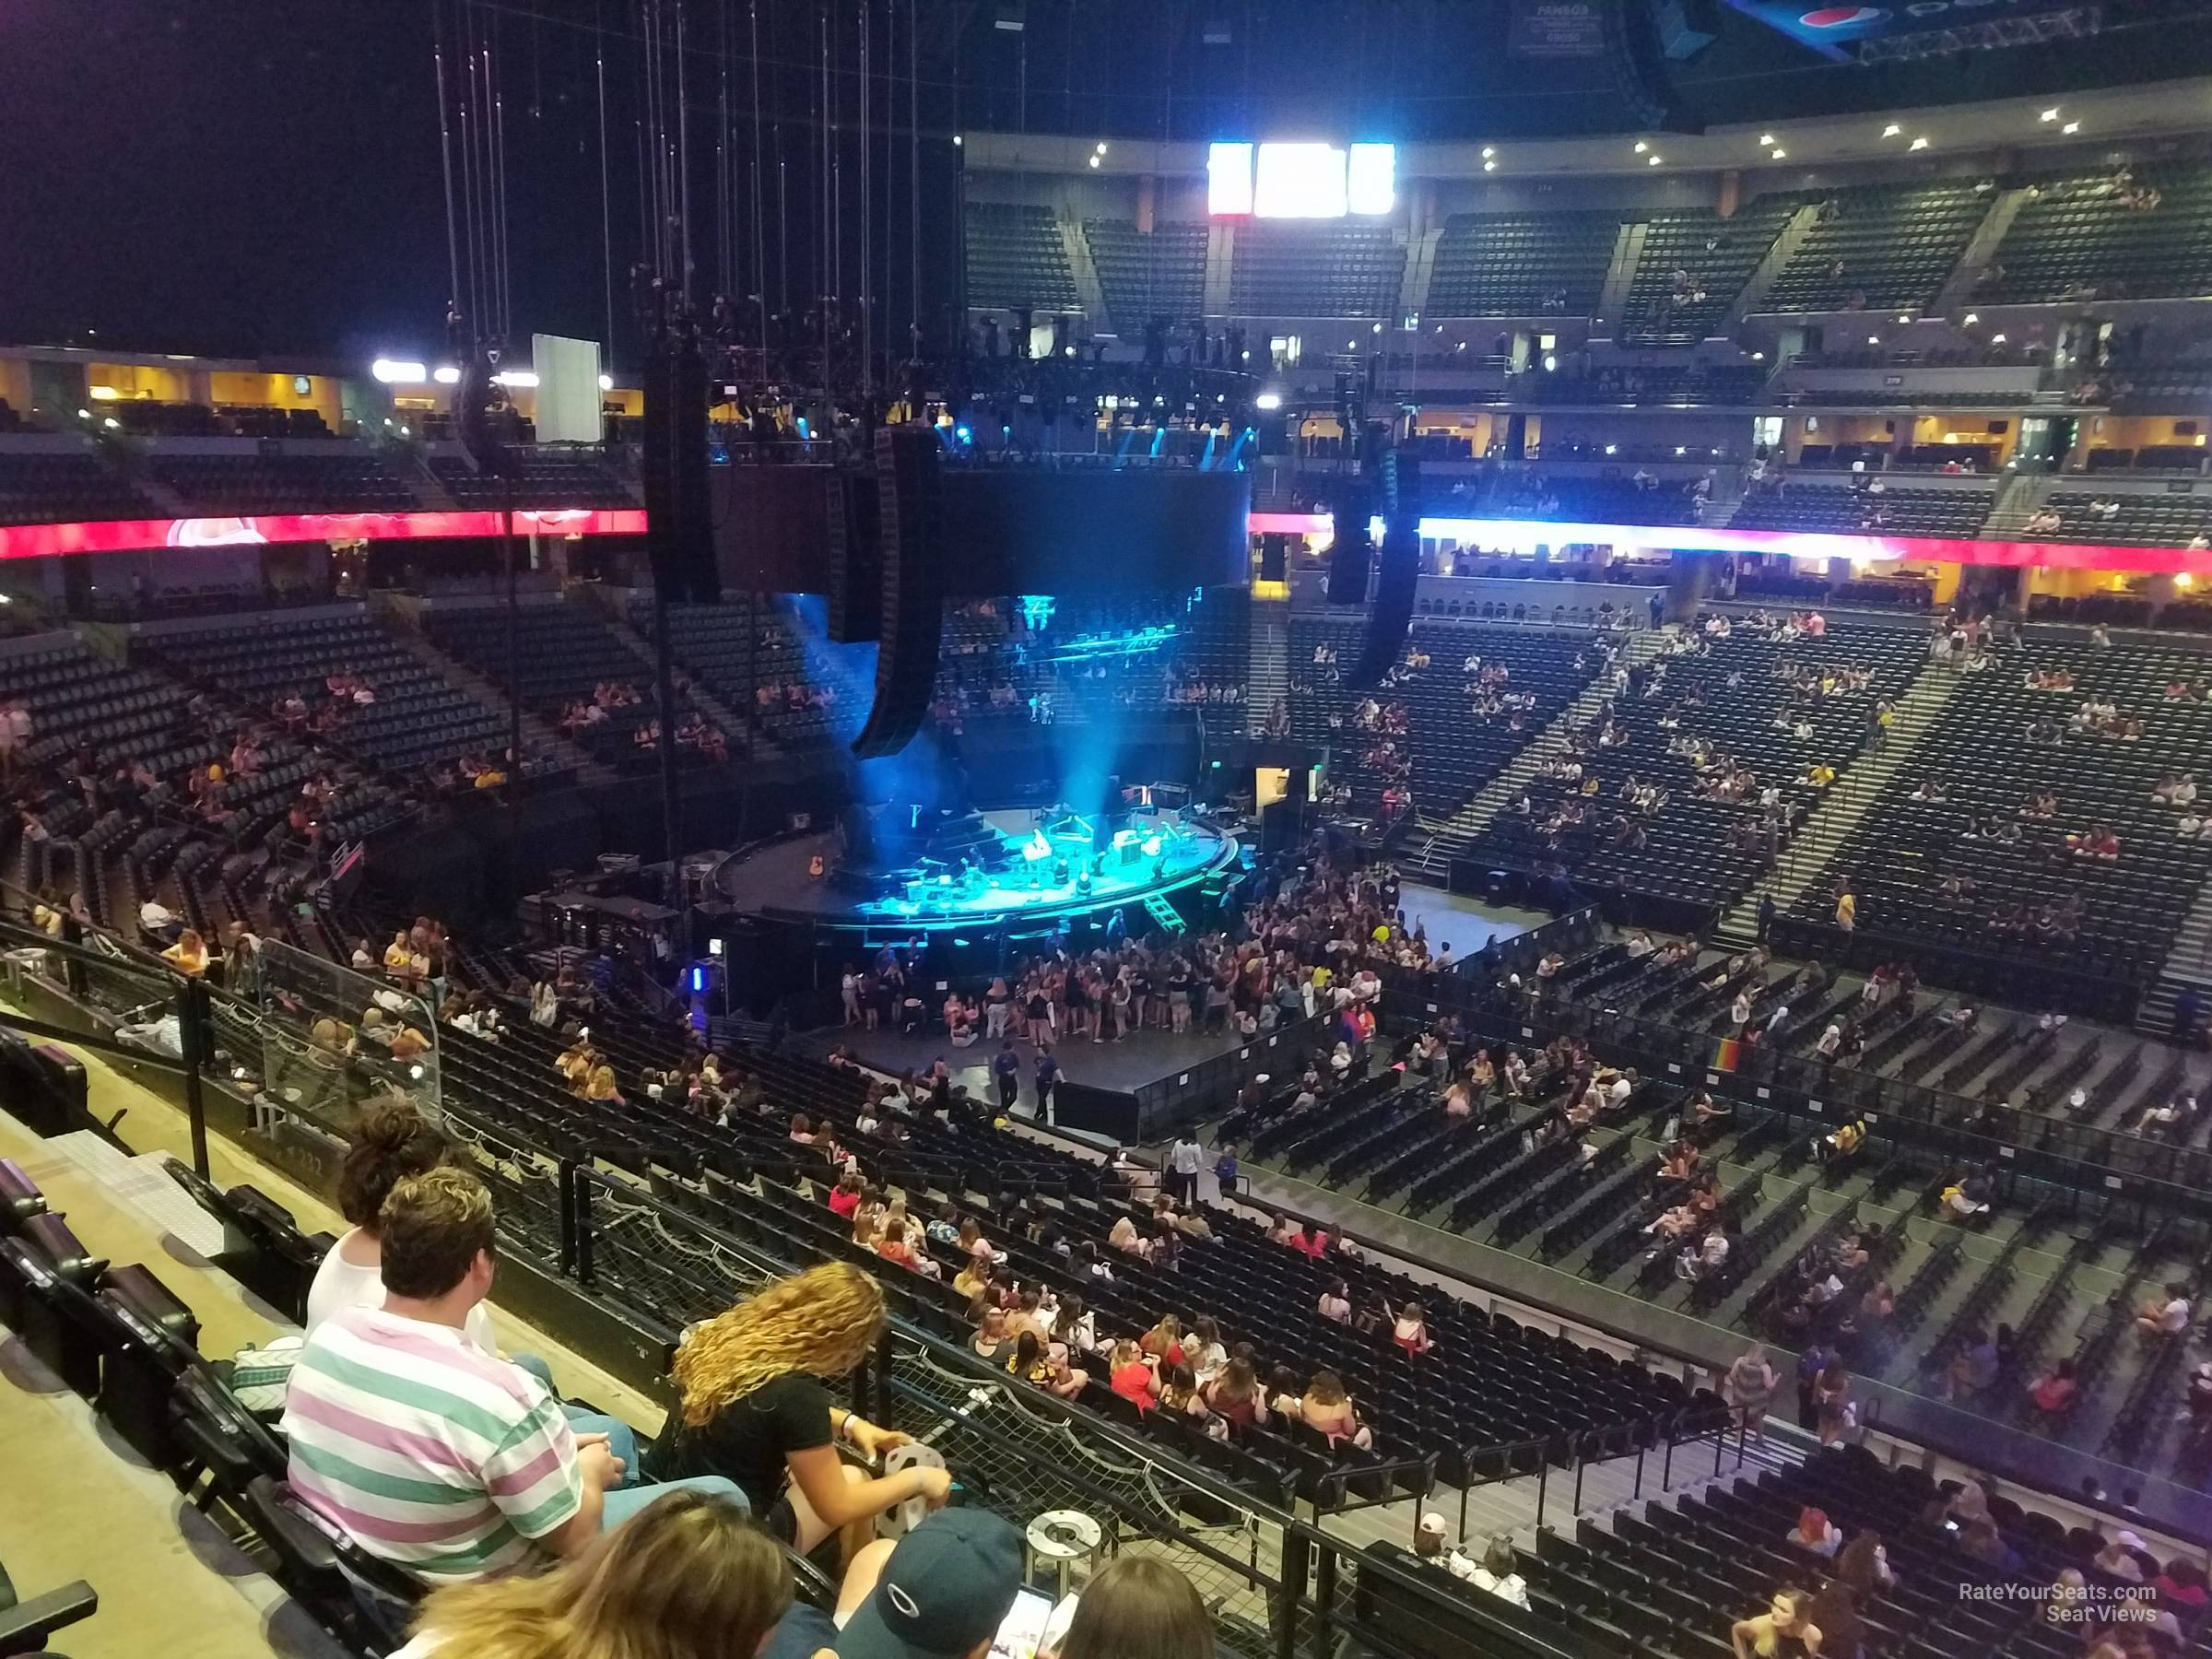 Pepsi Center: Pepsi Center Section 230 Concert Seating